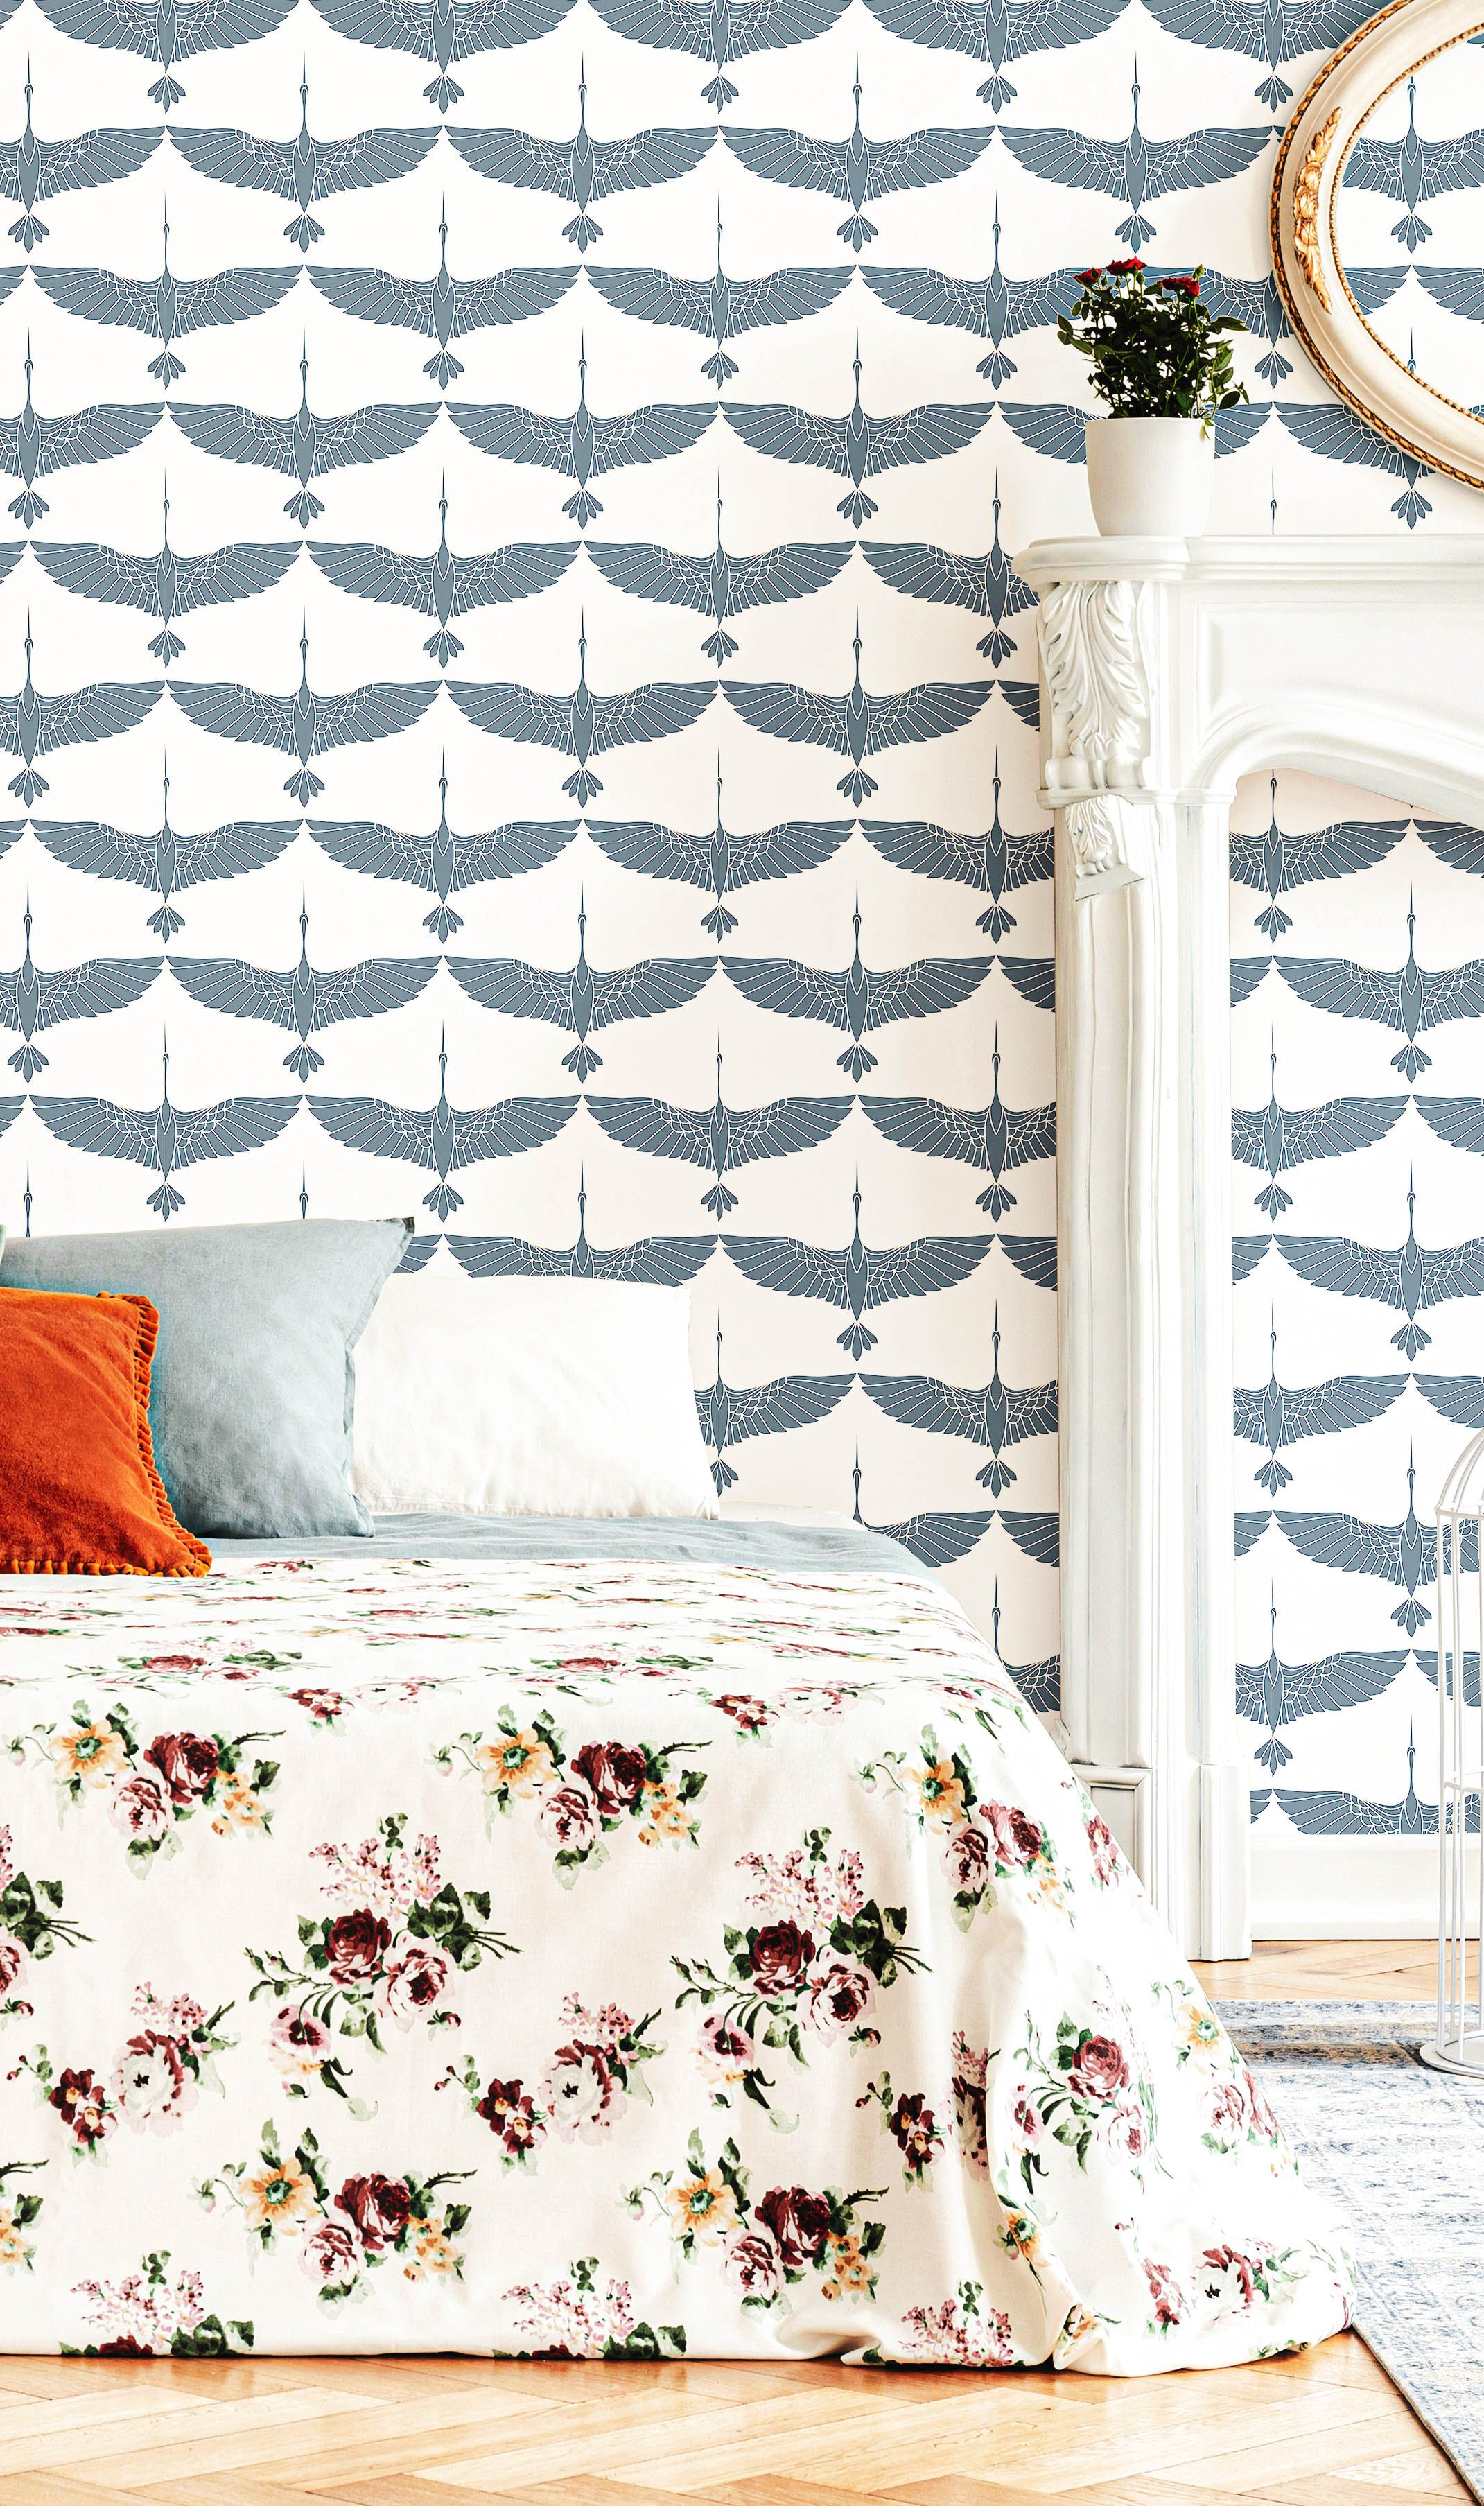 Blue Birds Peel And Stick Removable Wallpaper 4684 Removable Wallpaper Bedroom Removable Wallpaper Room Decor Bedroom